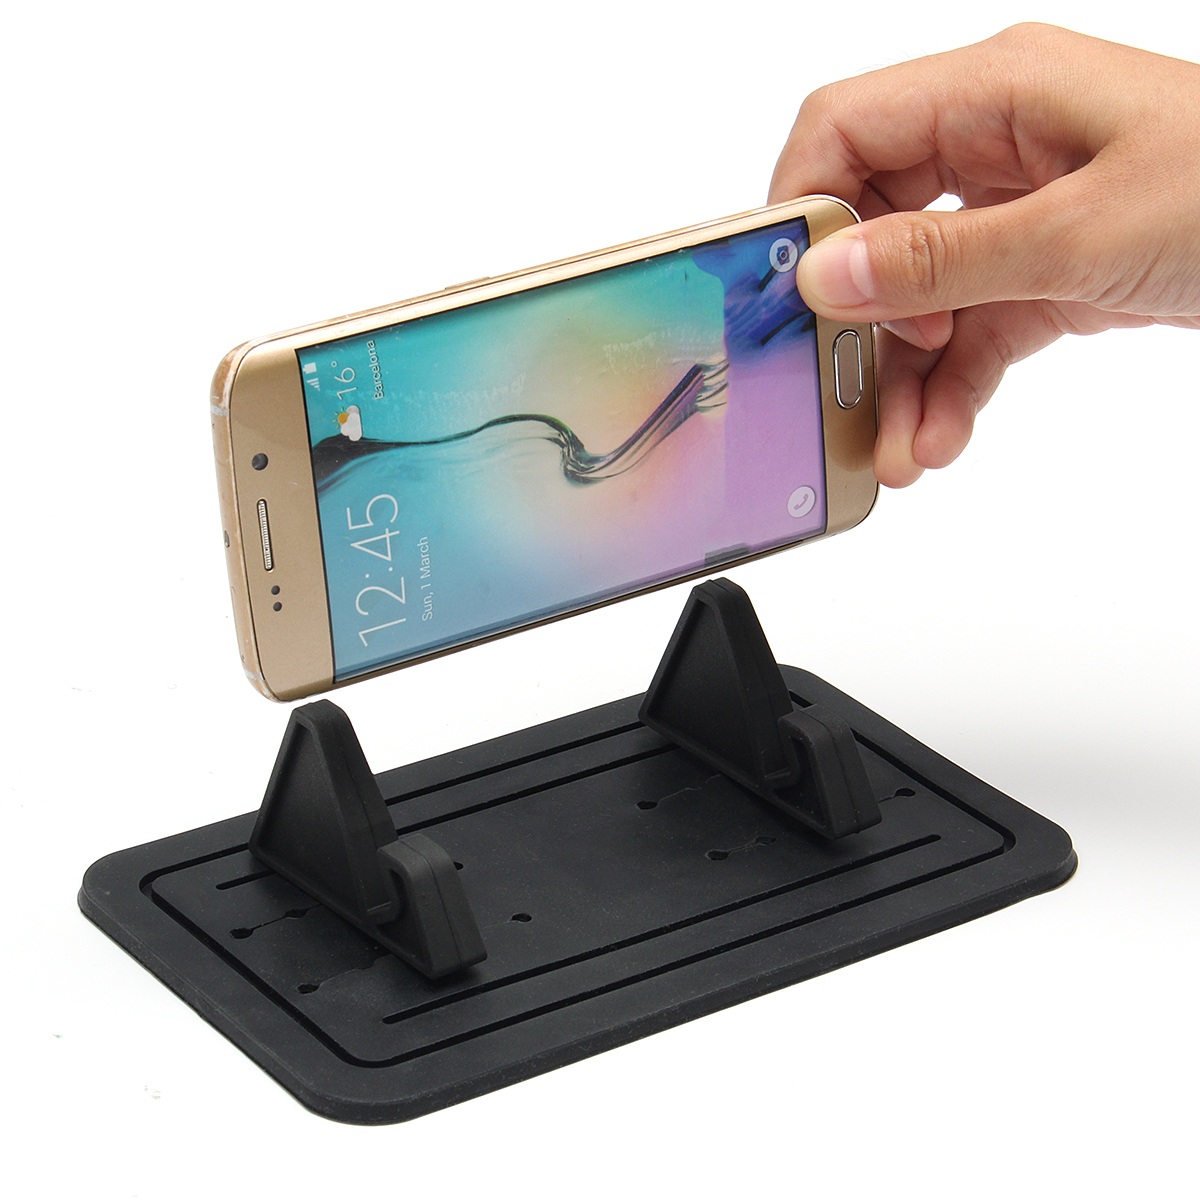 Universal Car Silicon Pad Dash Phone Holder Mount Dashboard Stand for iPhone Samsung Xiaomi Huawei